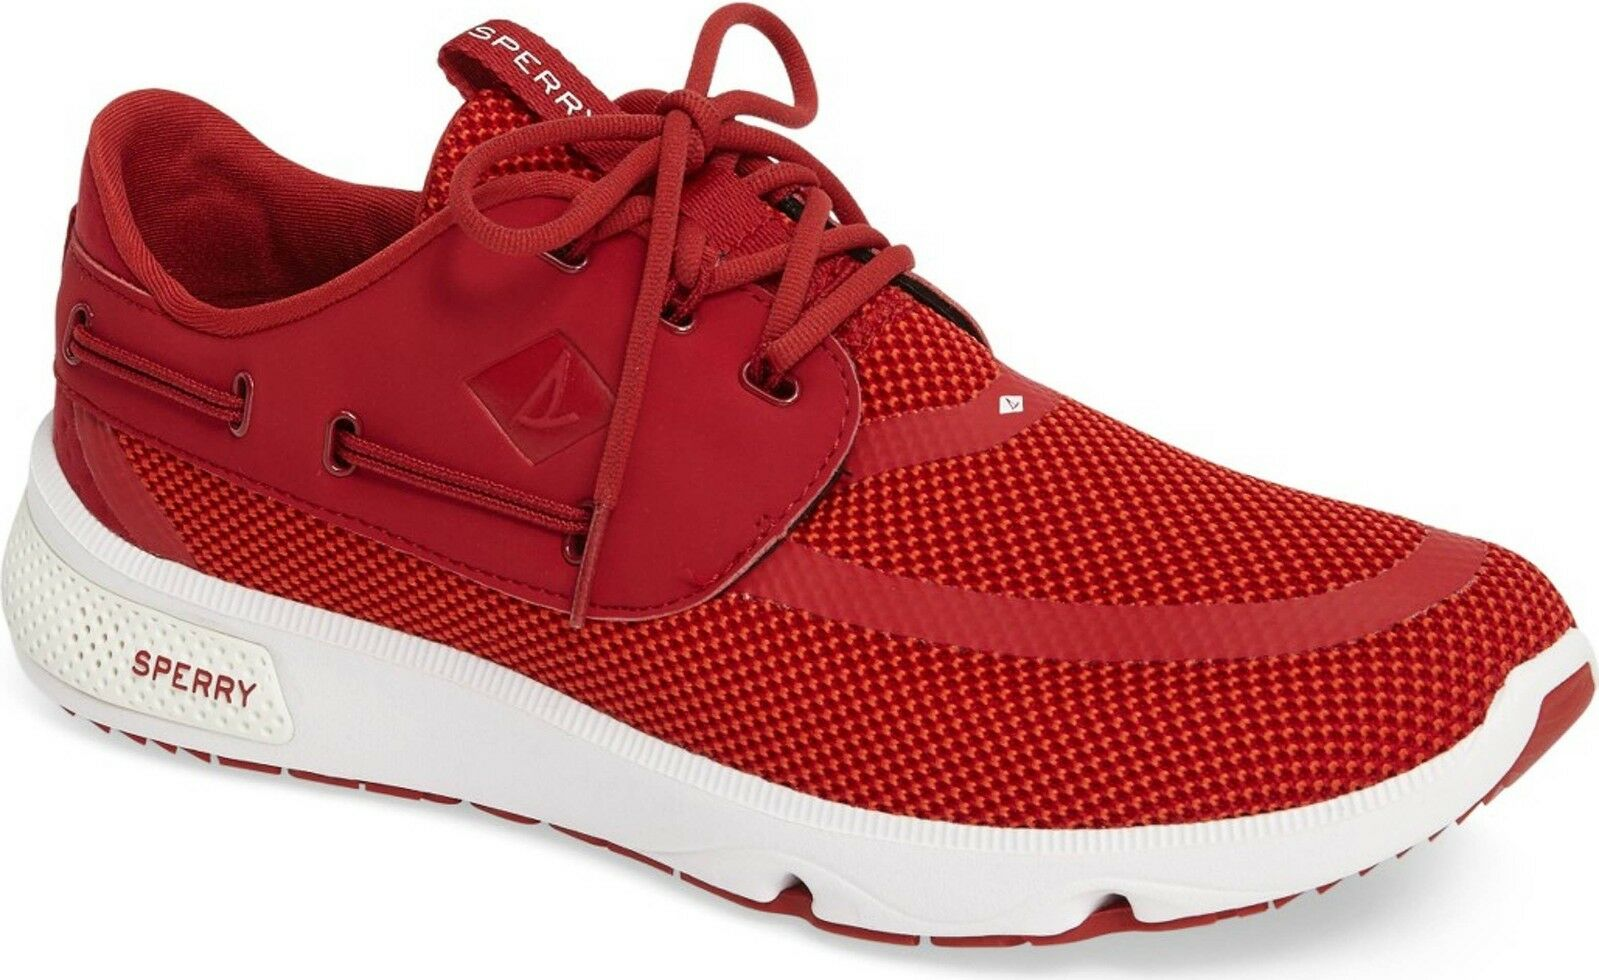 NEW - SPERRY TOP-SIDER Men's Red Knit SEAS 3-Eye Sneaker Boat Shoe - STS15529